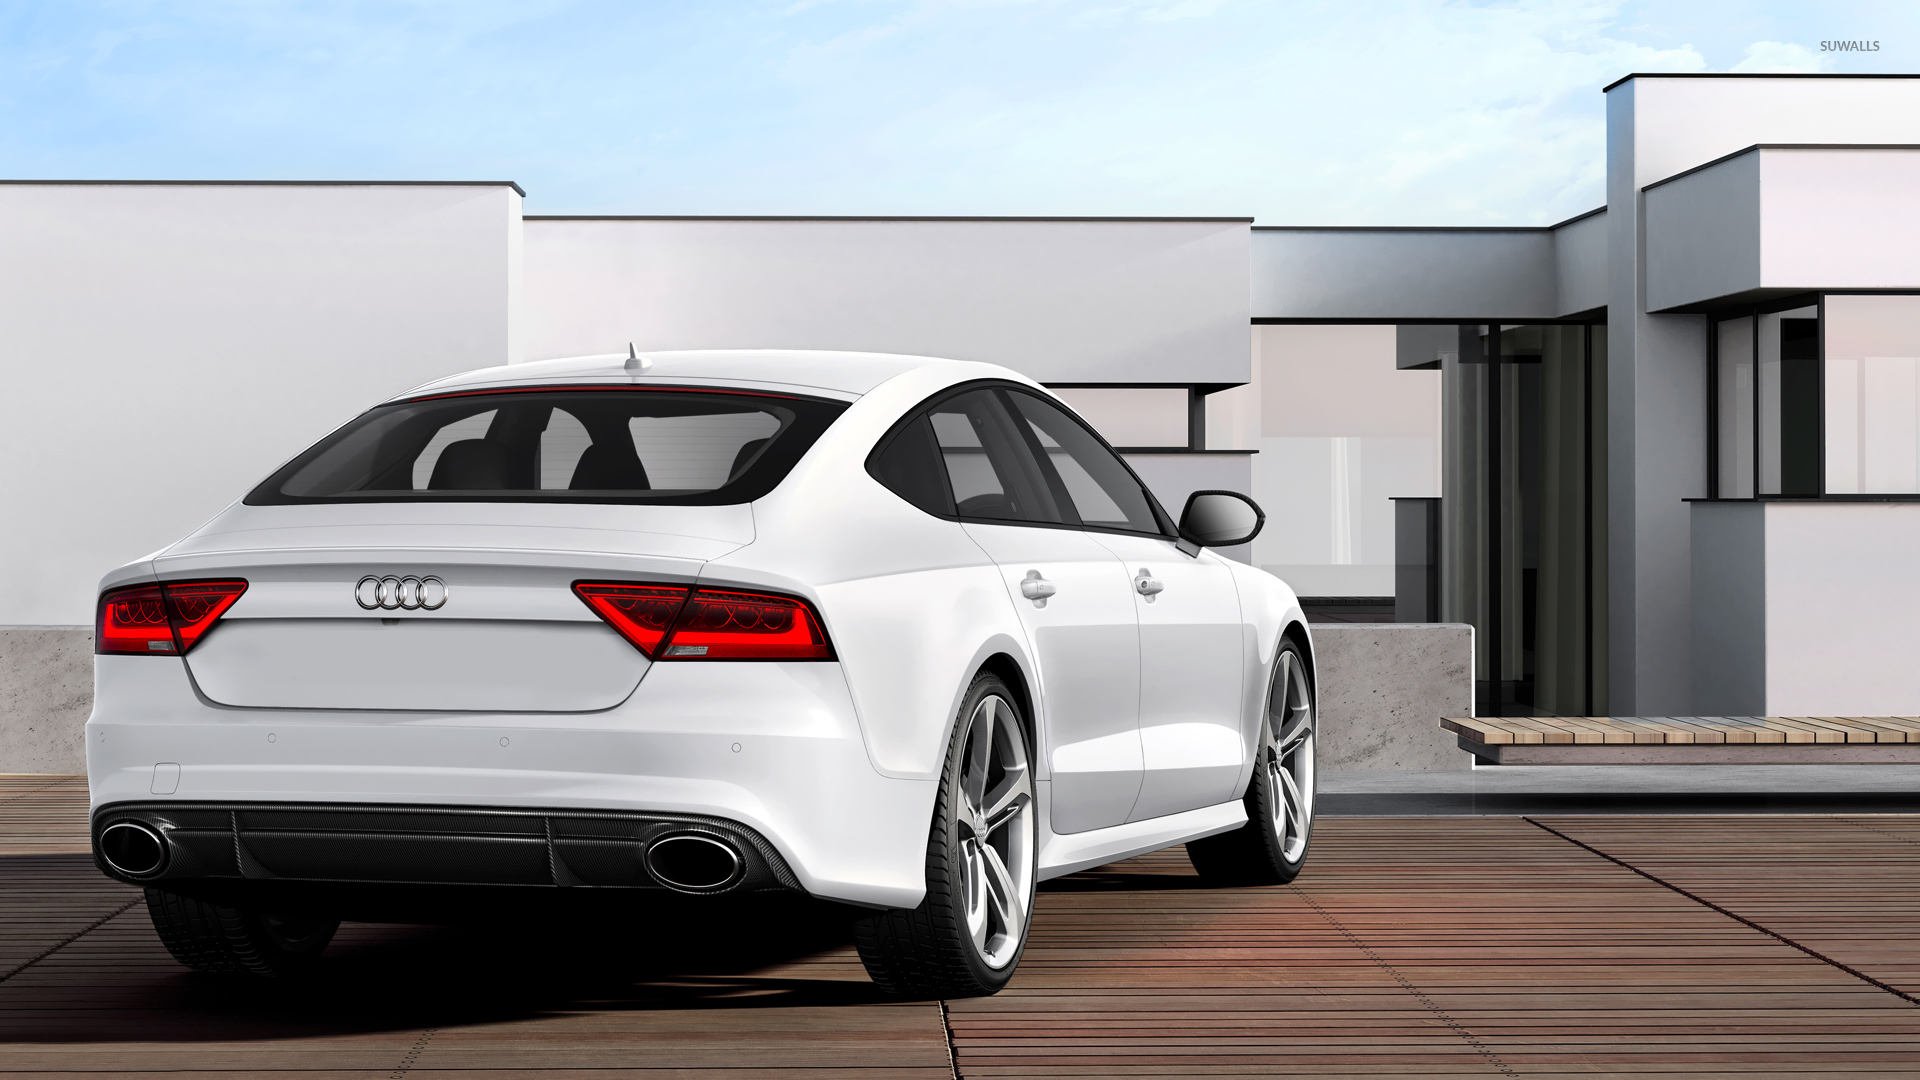 Back View Of A 2014 Audi Rs7 Sportback Wallpaper Car Wallpapers 53109